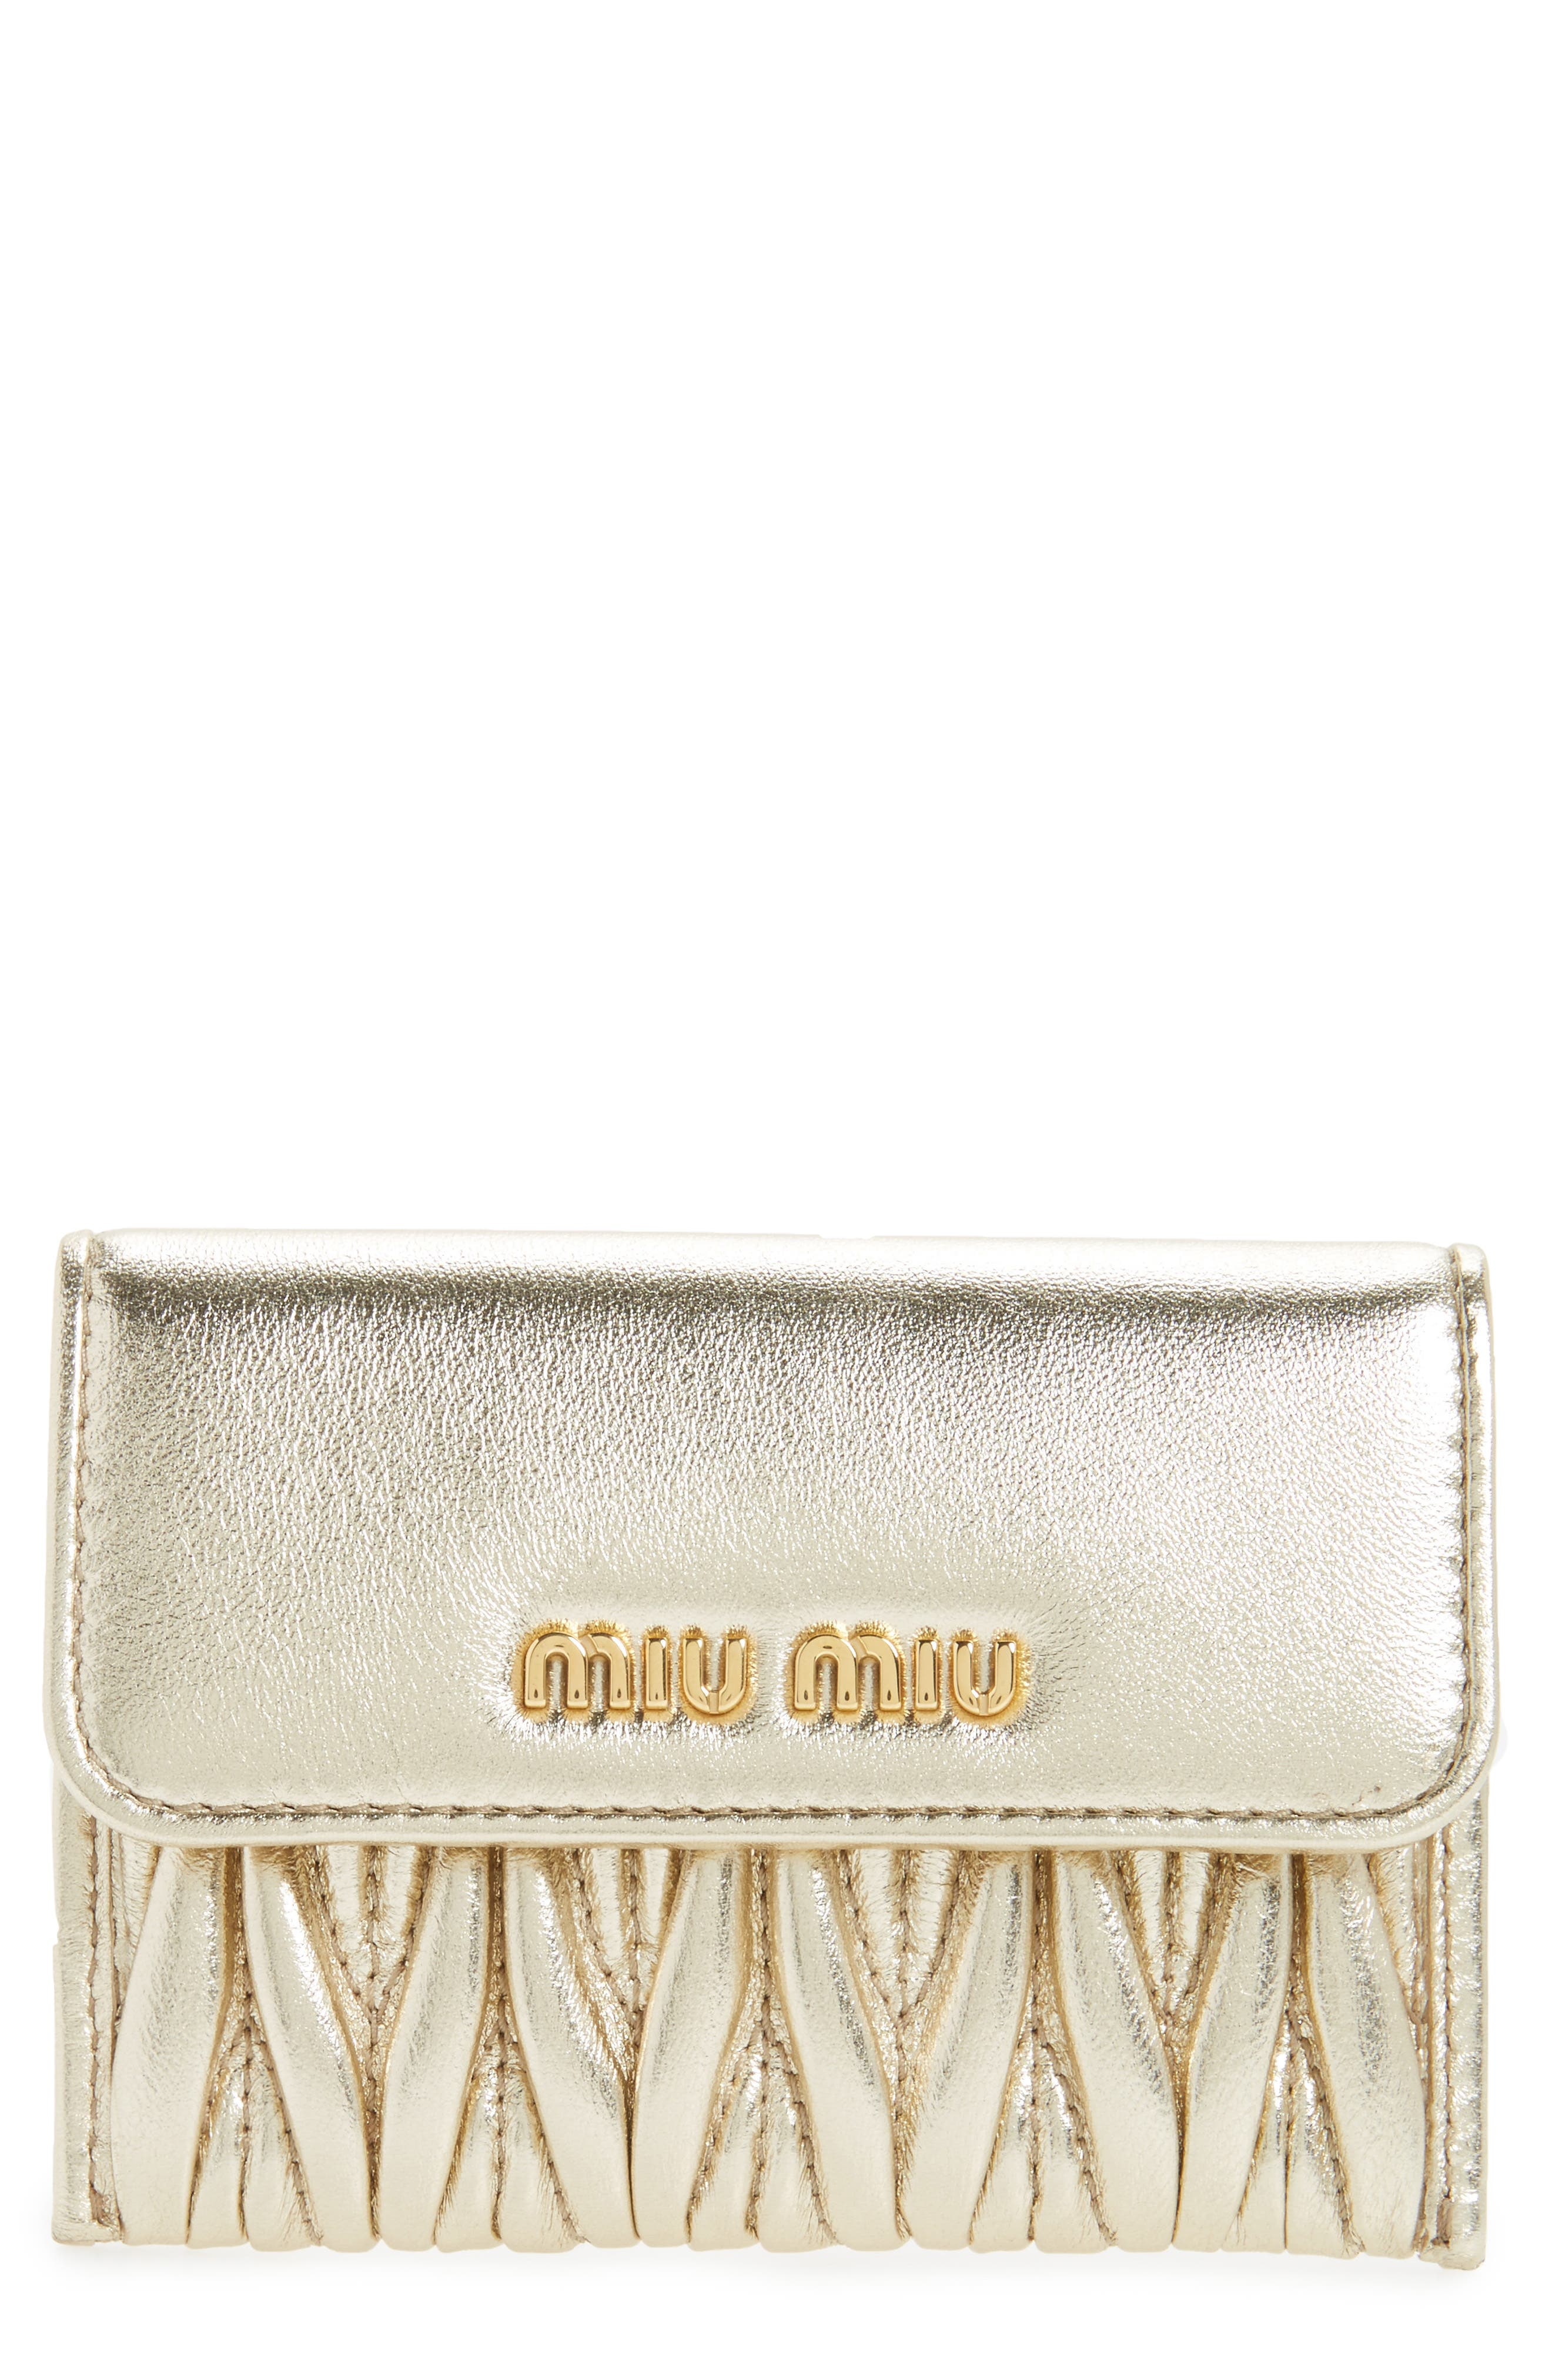 Miu Miu Matelassé Leather Wristlet